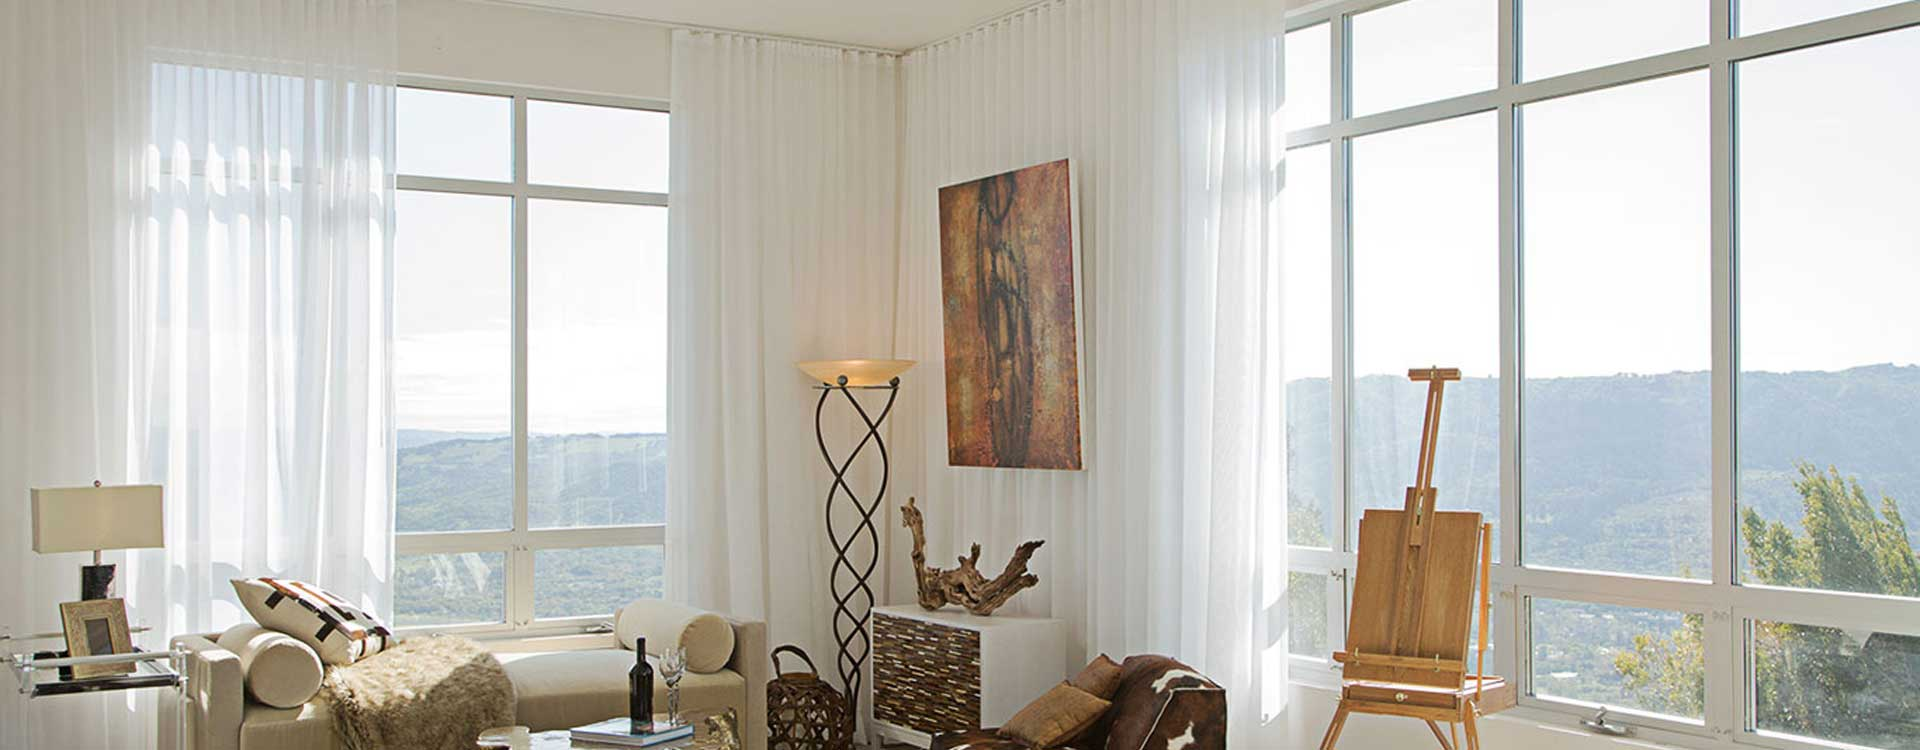 budget yourself how less west ikea look curtains an elm chic drapes to hem for the a living on